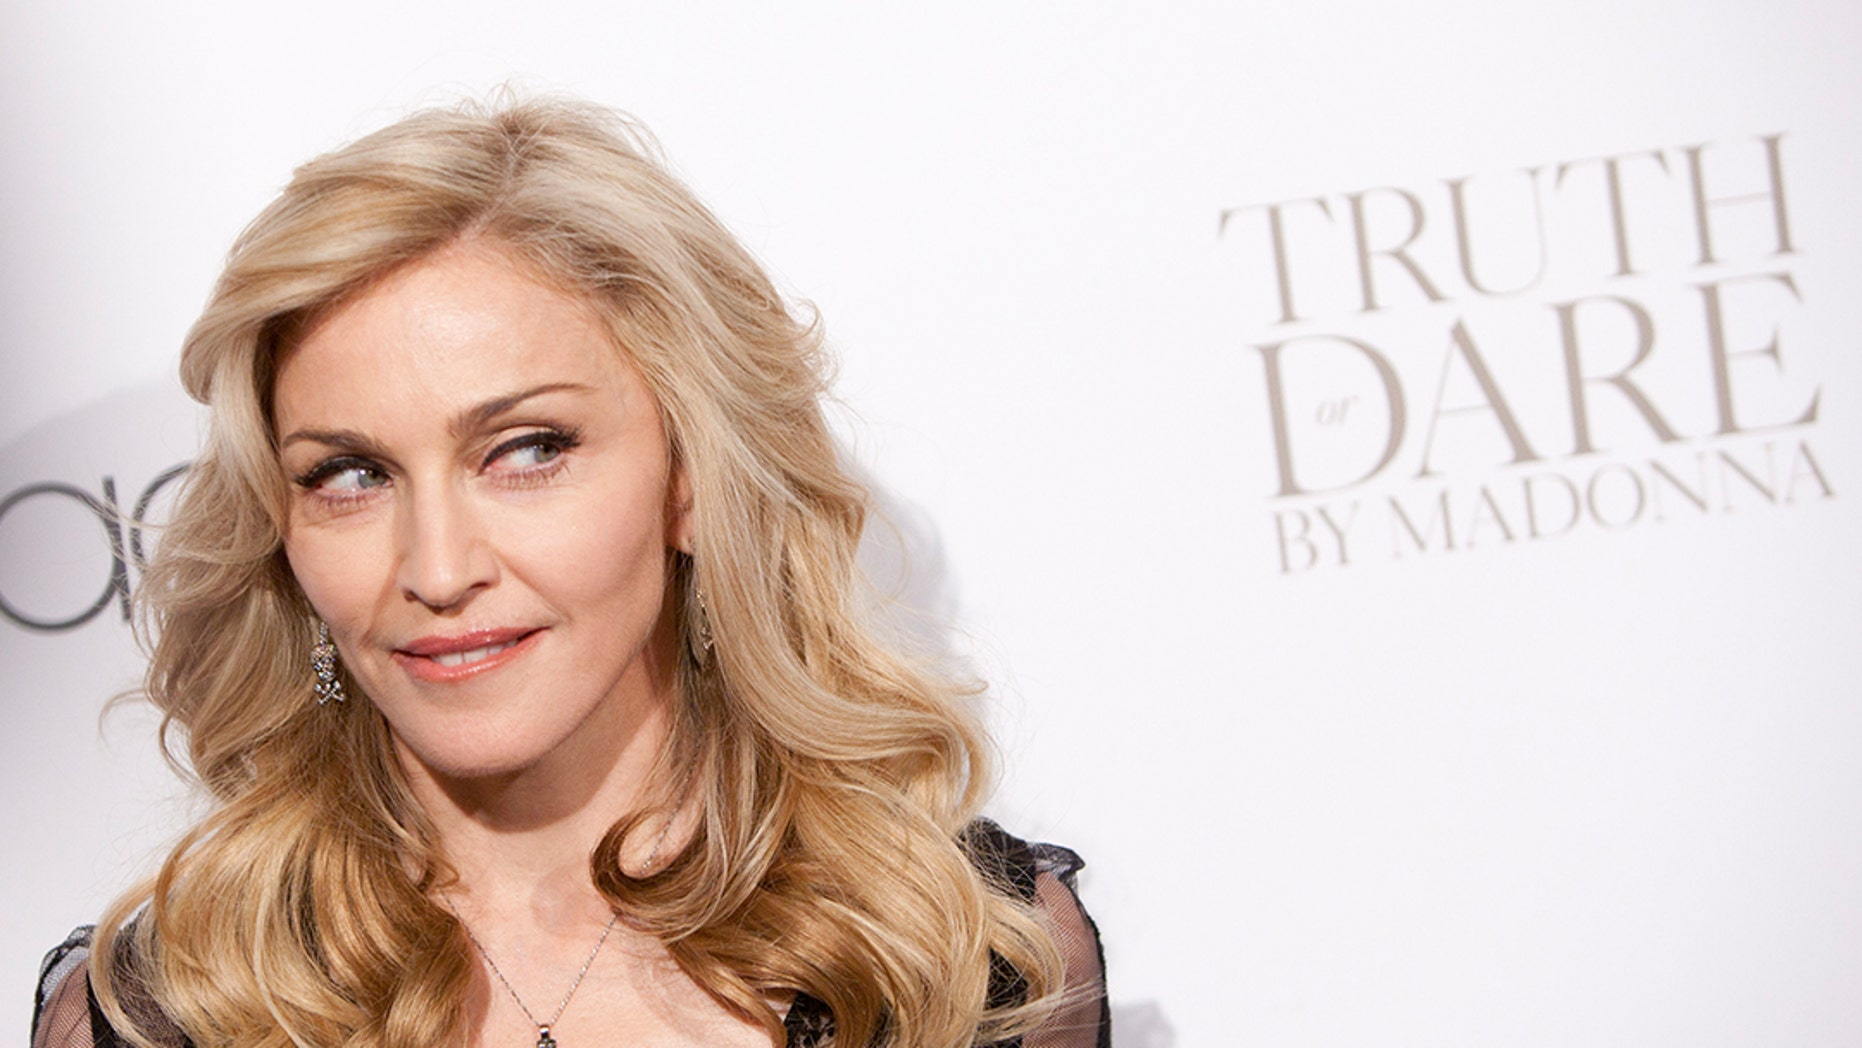 Madonna loses auction battle for her personal letter from late boyfriend, Tupac Shakur.